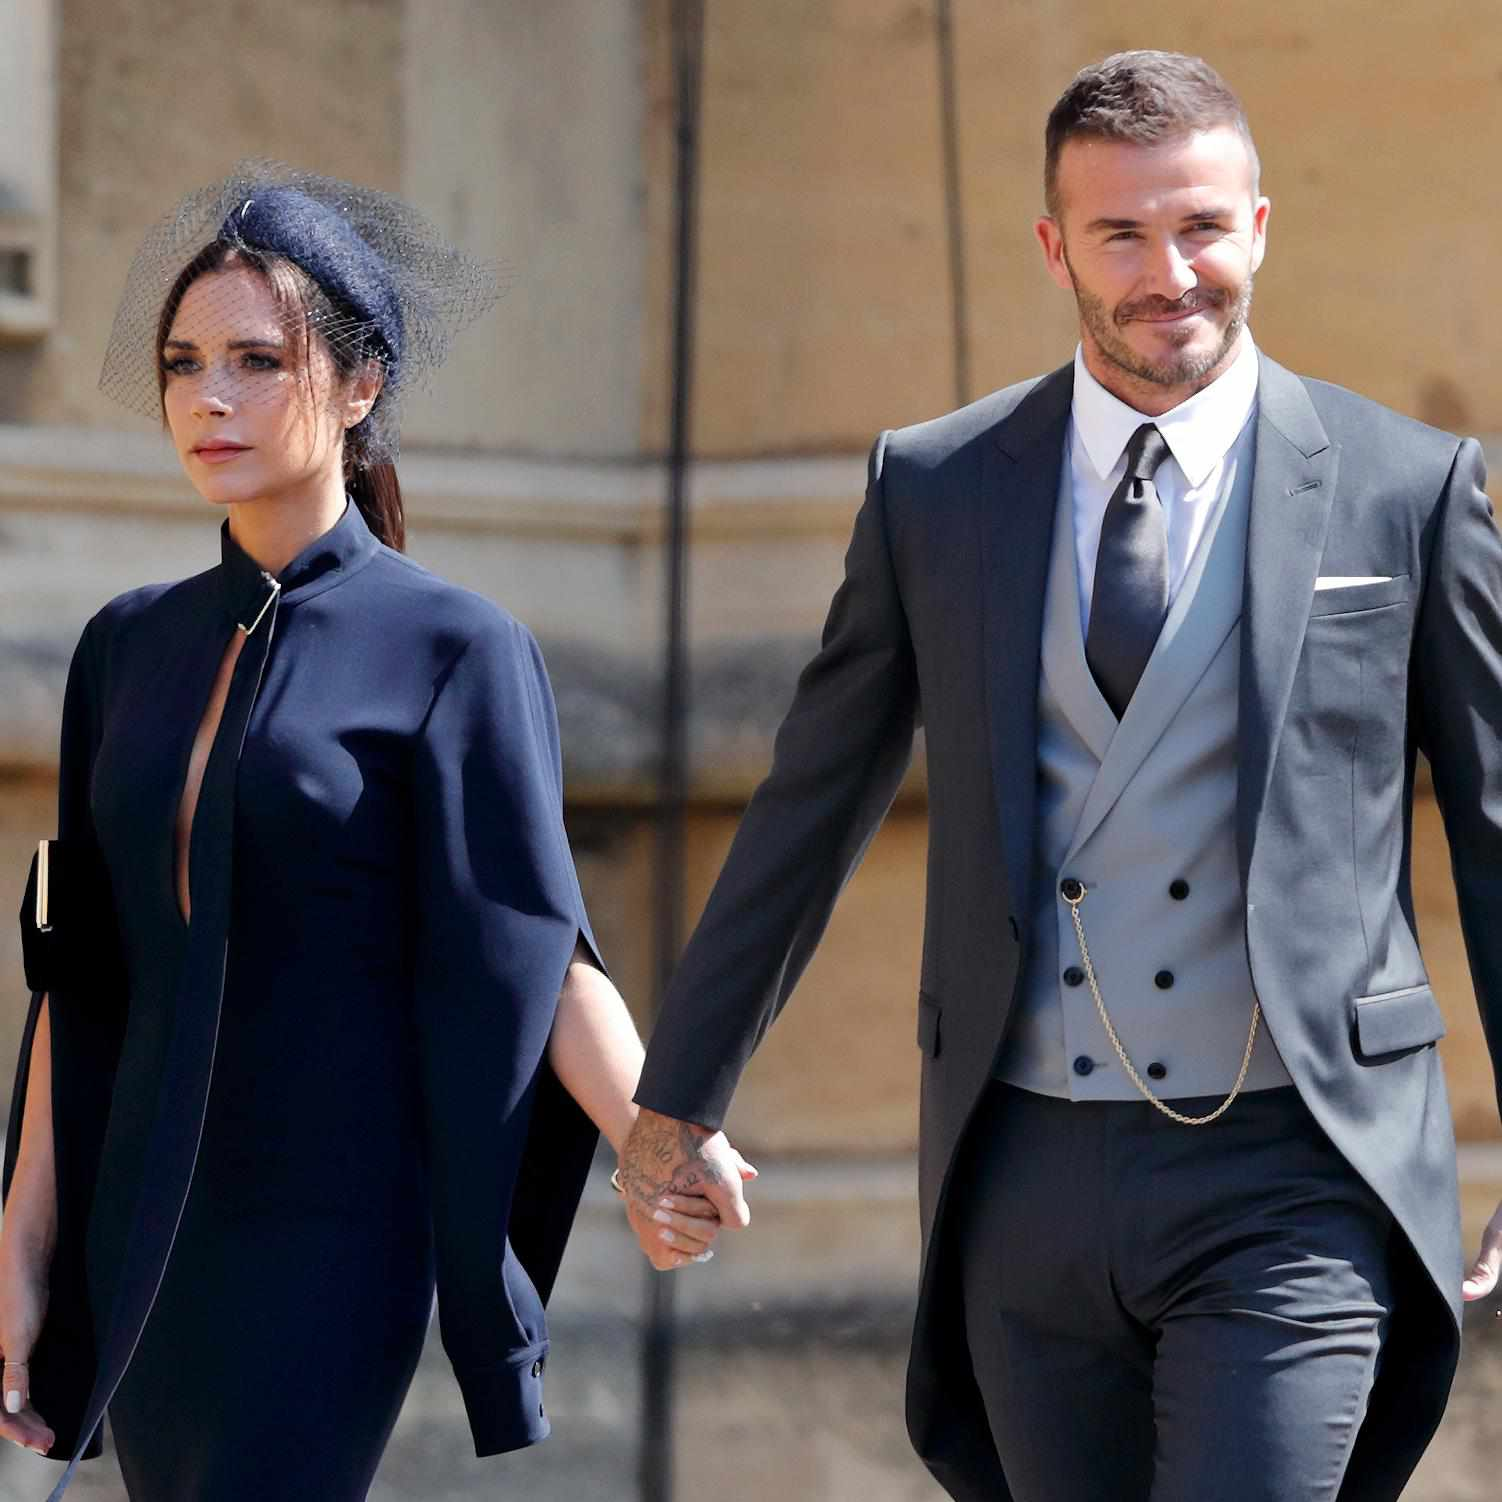 victoria beckham's dress from the royal wedding is now